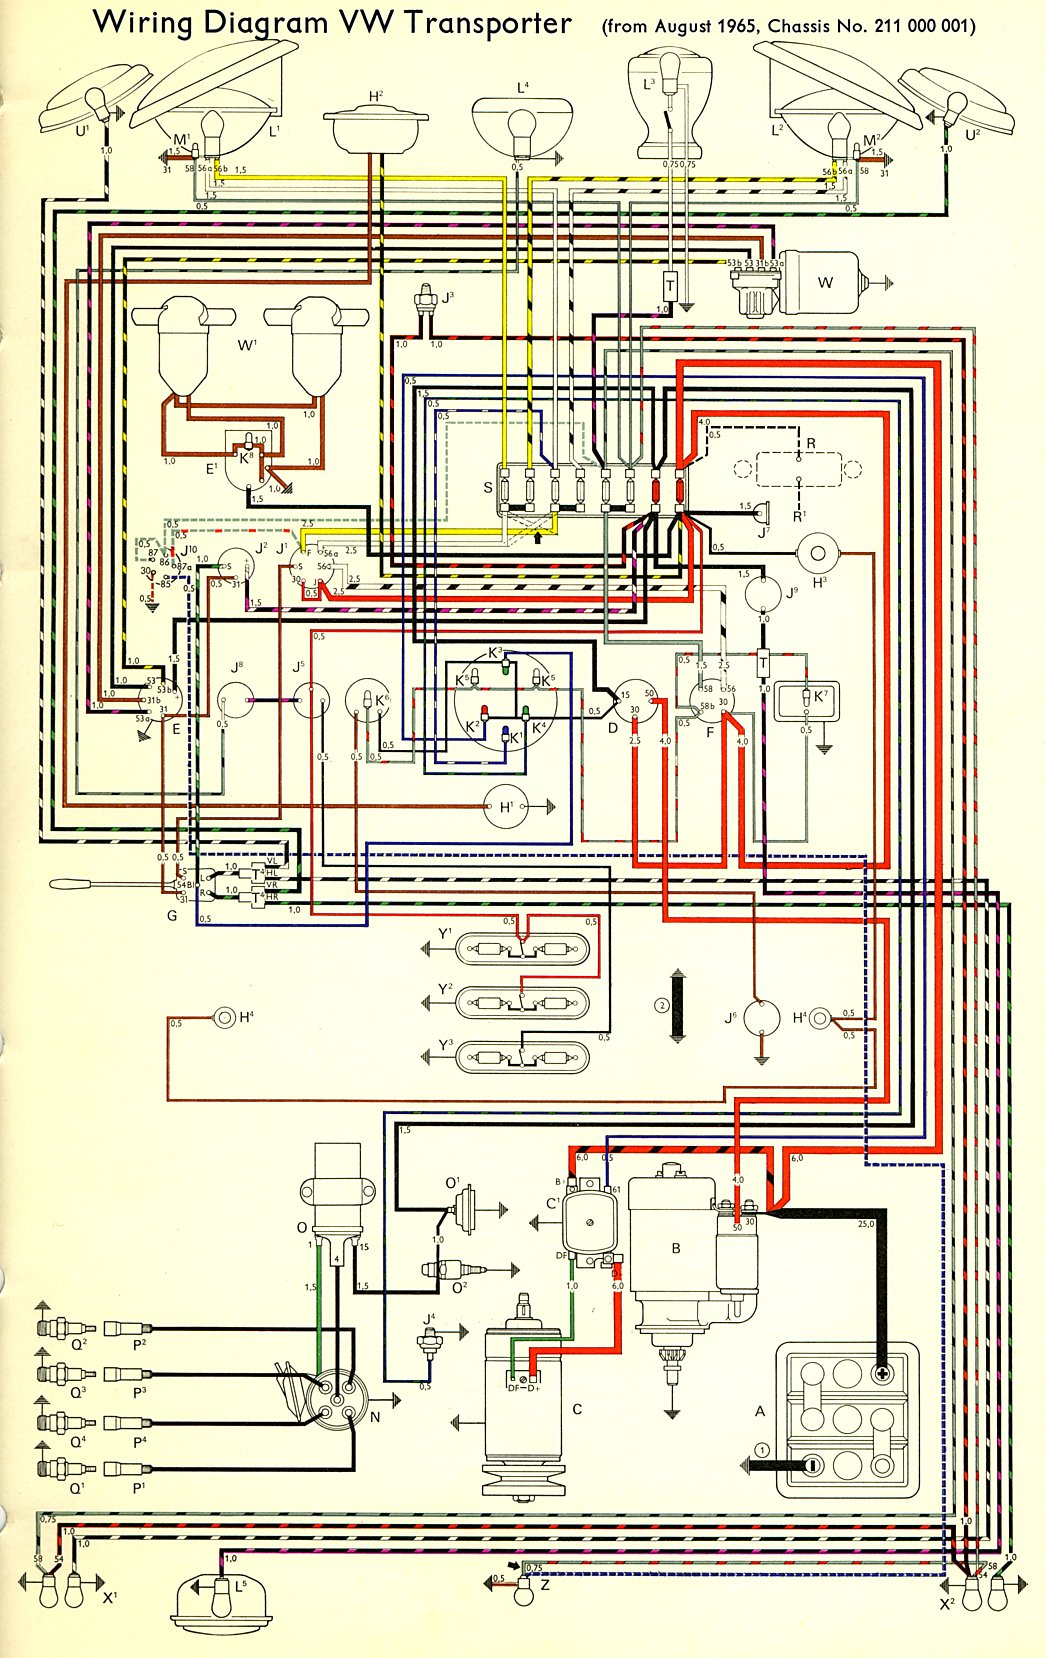 1973 Evinrude 65 Wiring Diagram Library 74 Beetle Fuse Box 1974 Volkswagen Bug U2022 For Free